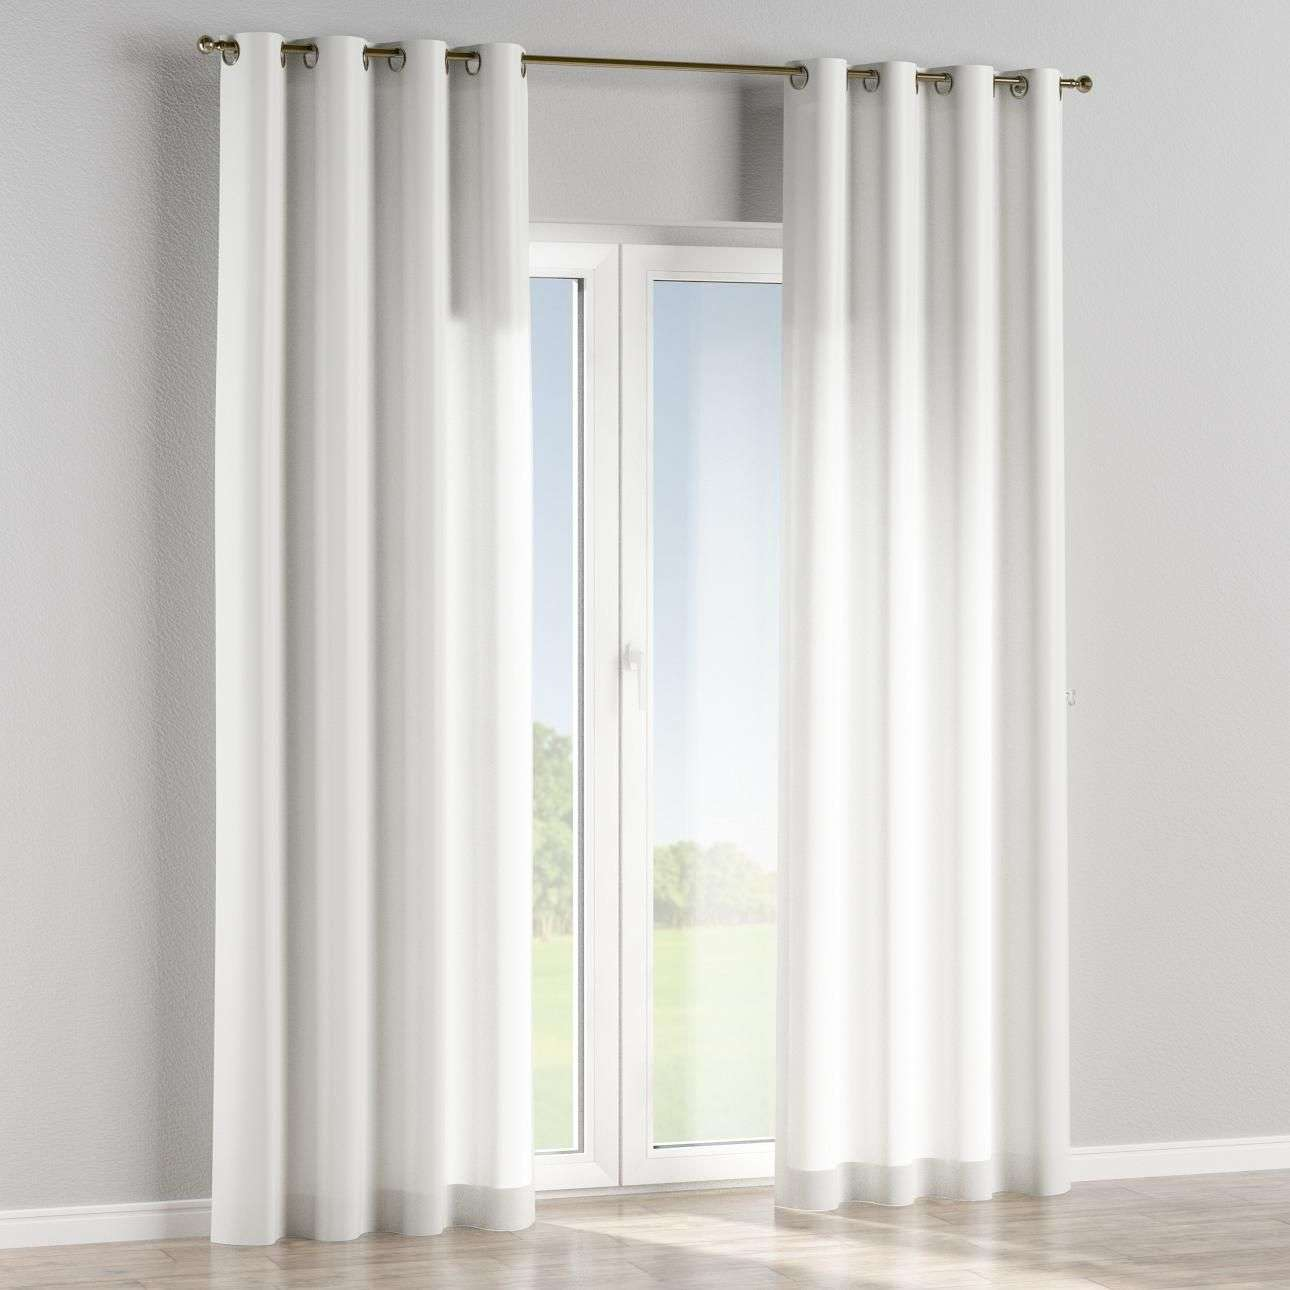 Eyelet curtains in collection Rustica, fabric: 138-19